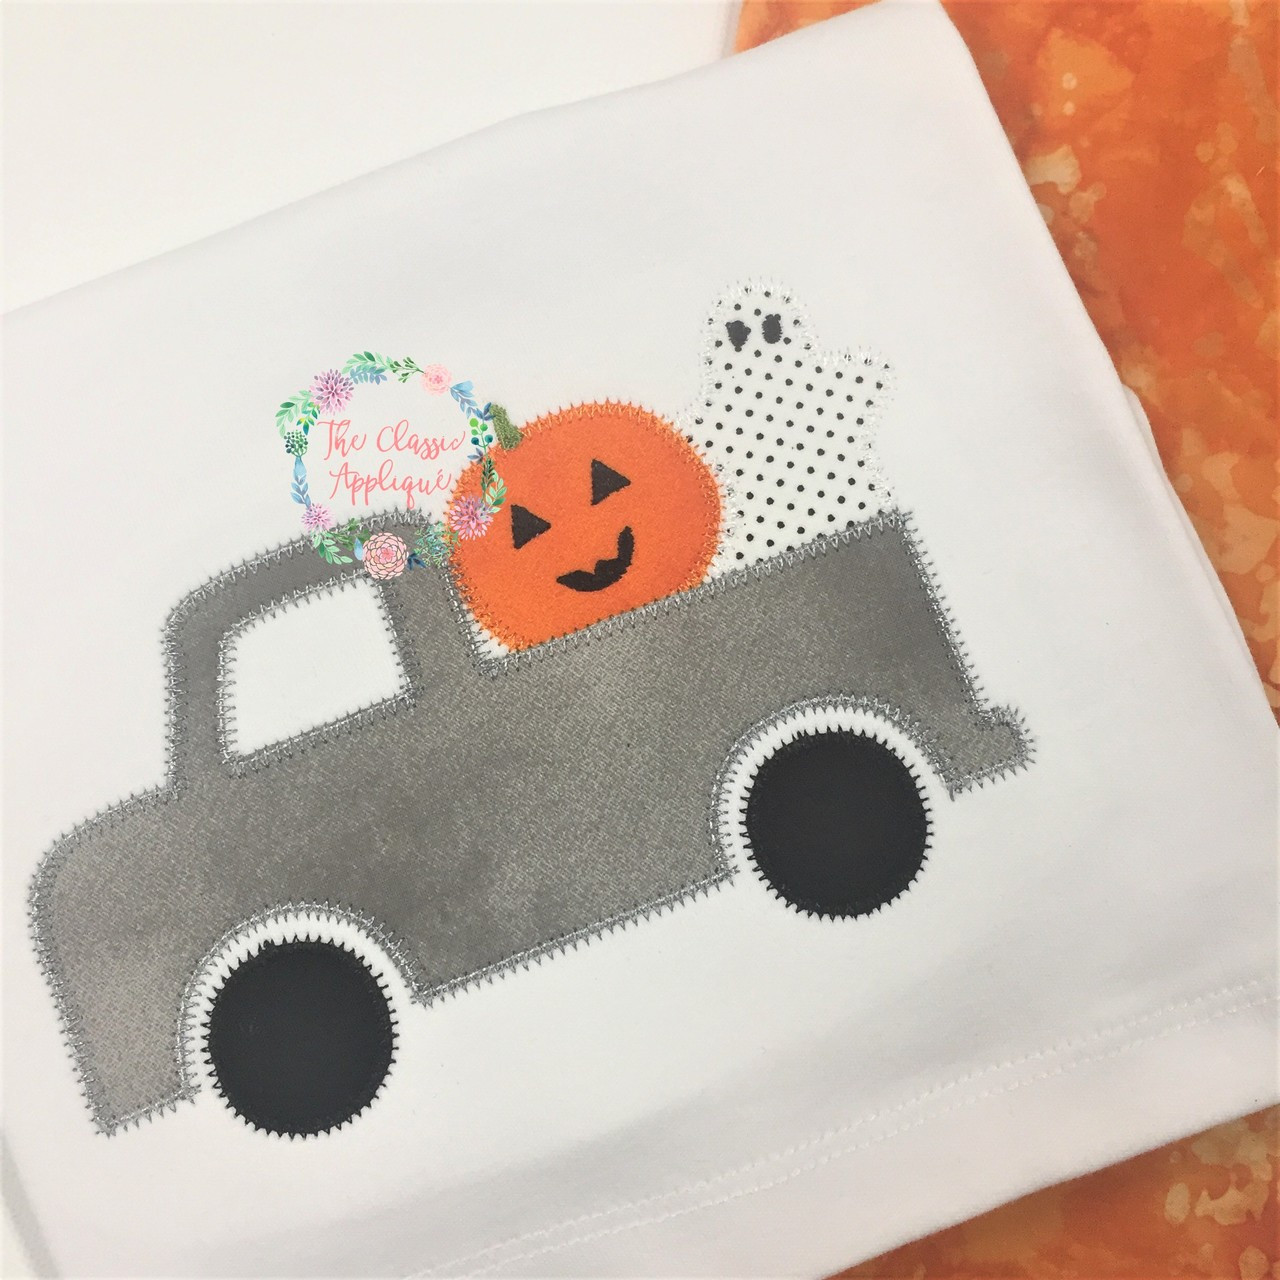 Halloween Boy Truck With Jack O Lantern And Ghost Zig Zag Applique Machine Embroidery Design By The Classic Applique